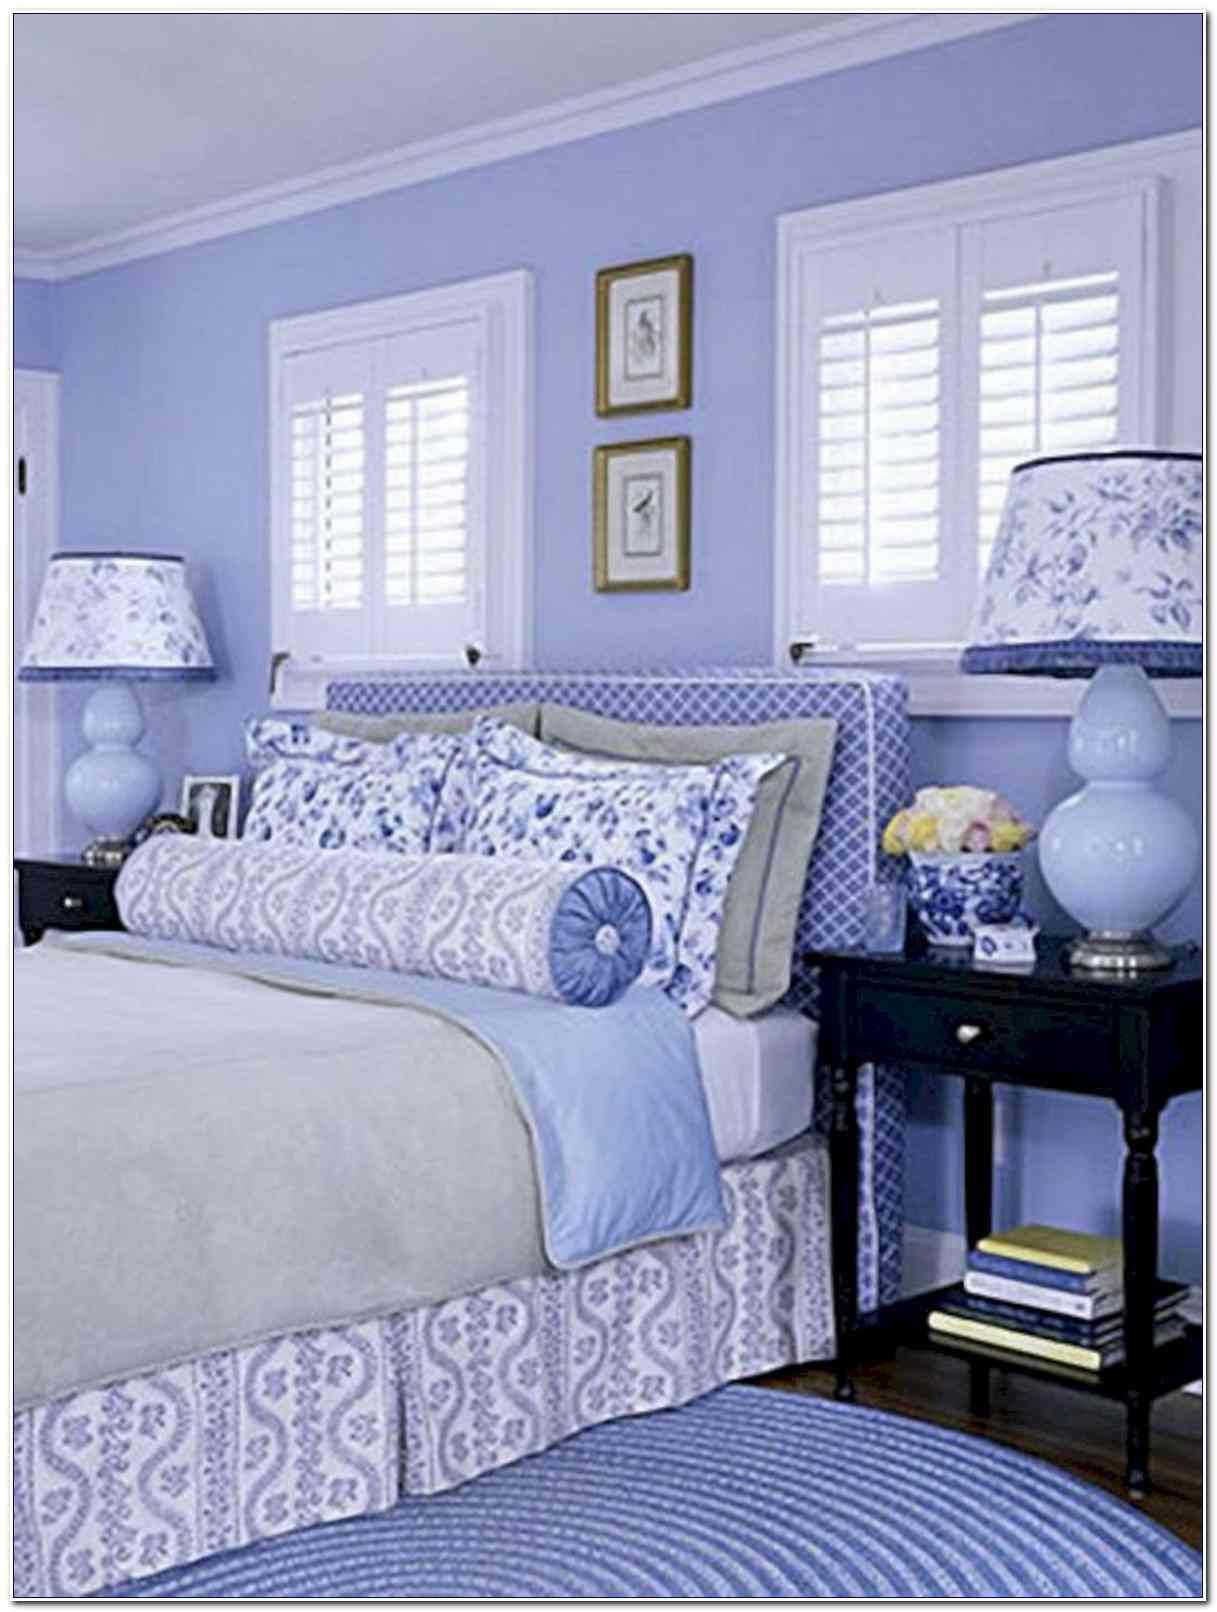 Periwinkle Bedroom Ideas With Images White Bedroom Design